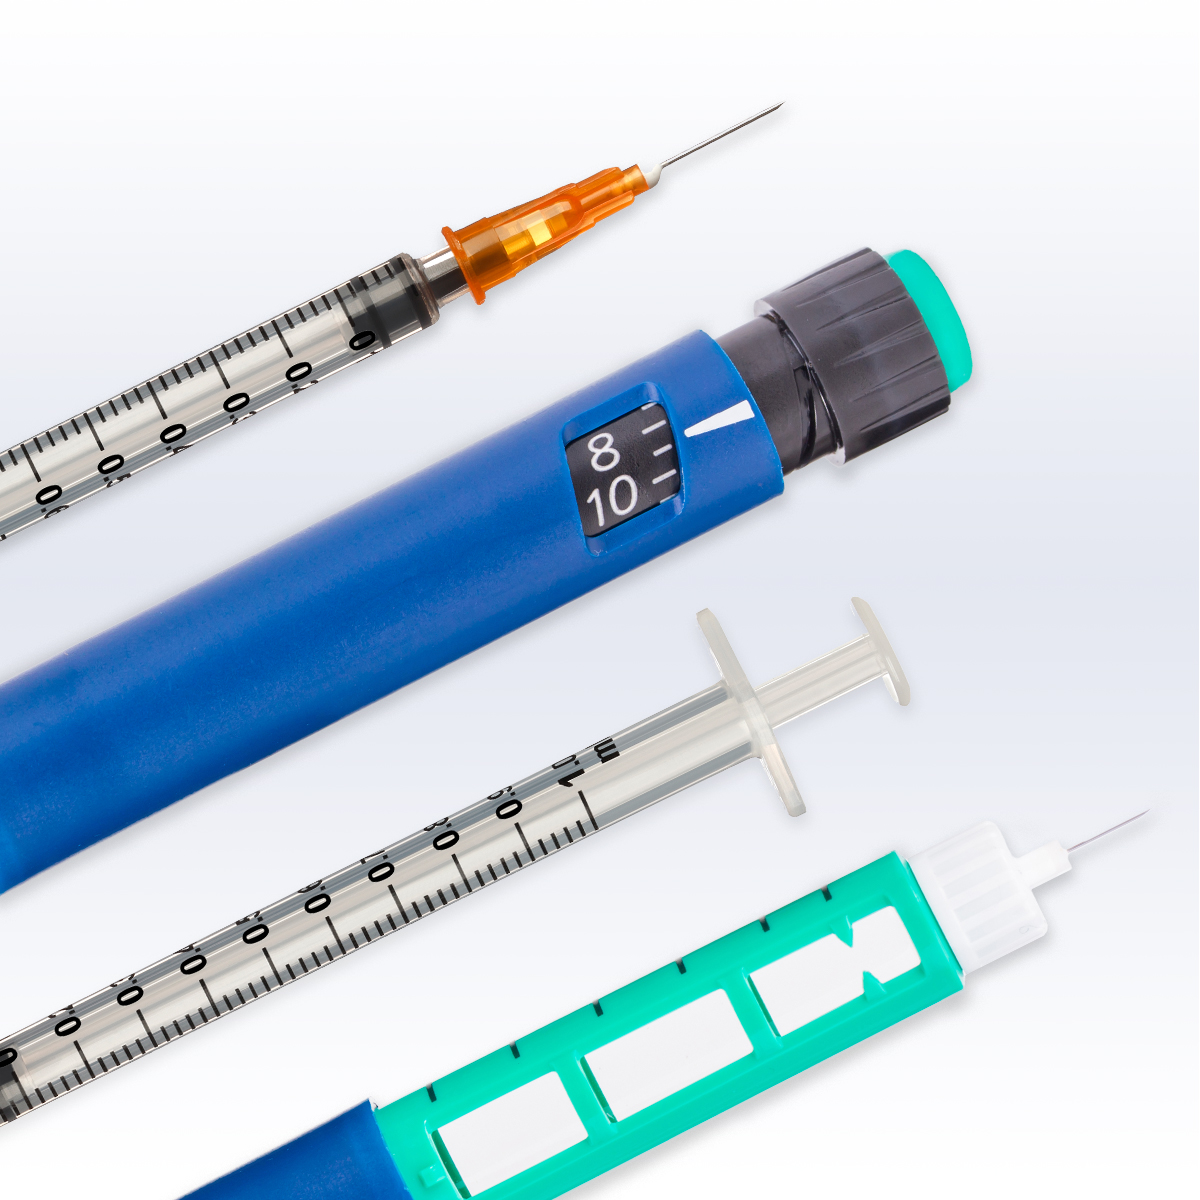 Insulin syringes and pens typically combine bolus insulin and basal insulin